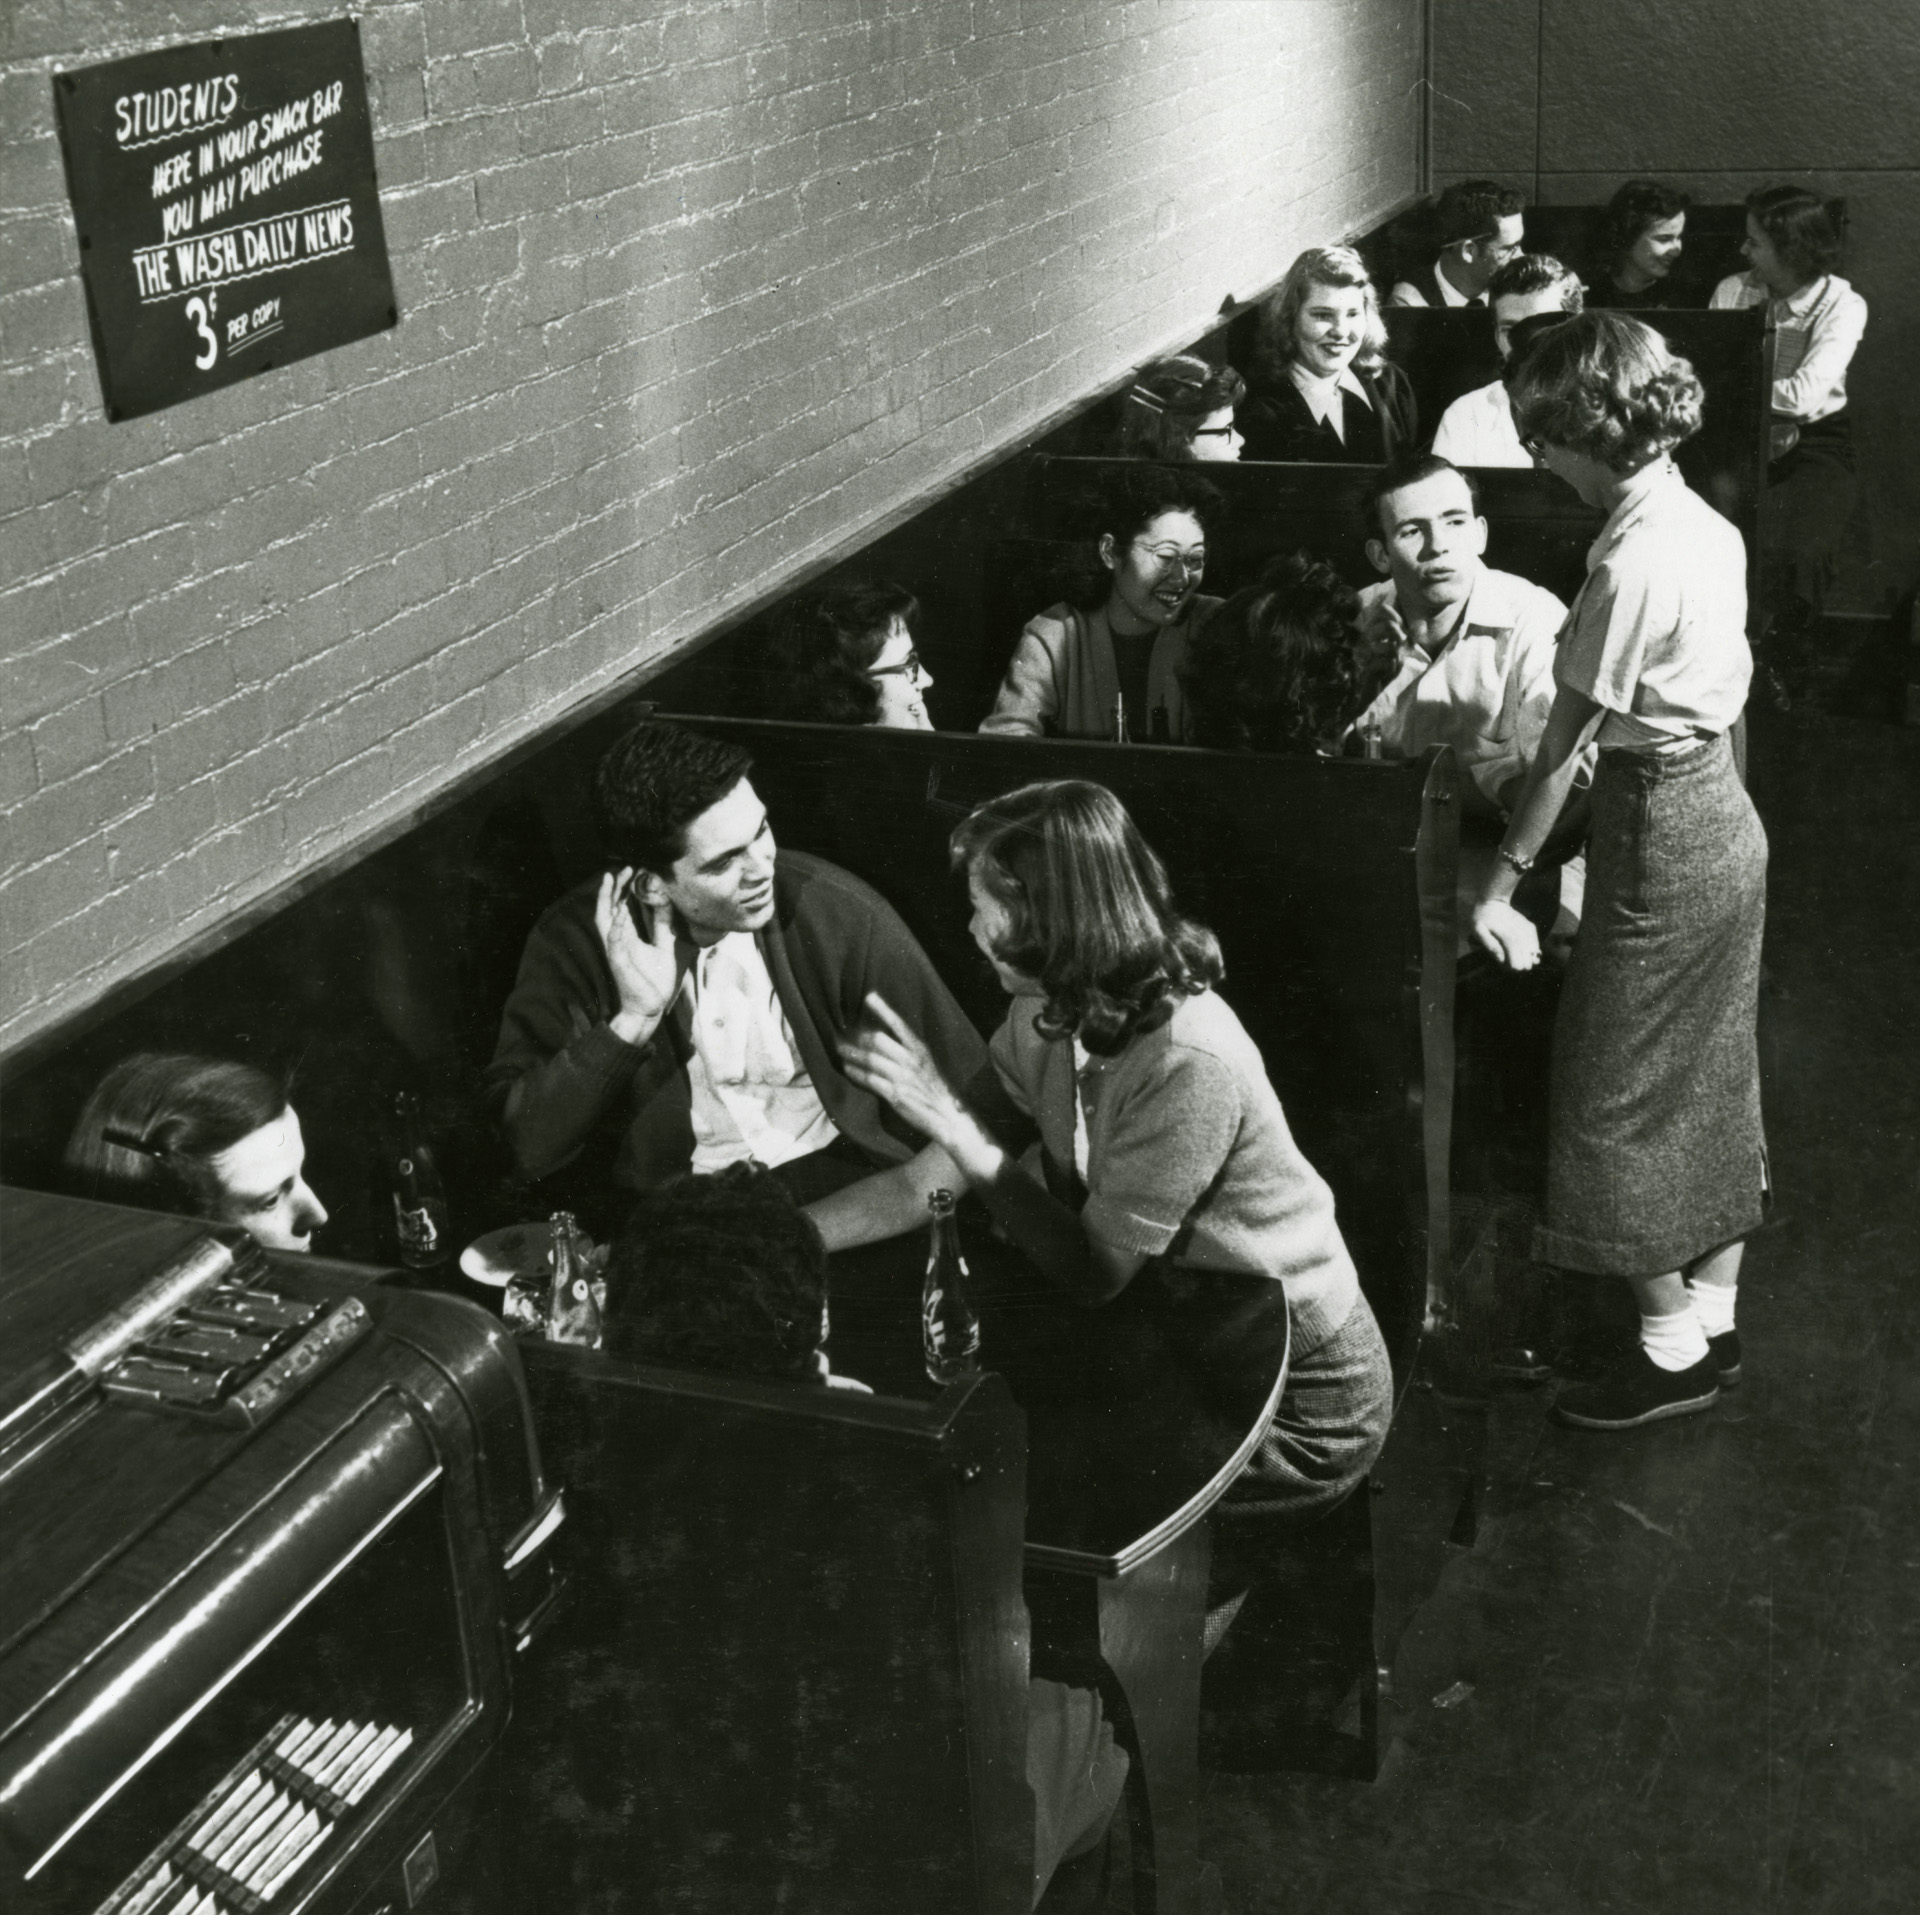 Blk/White photo of students sitting in booths.